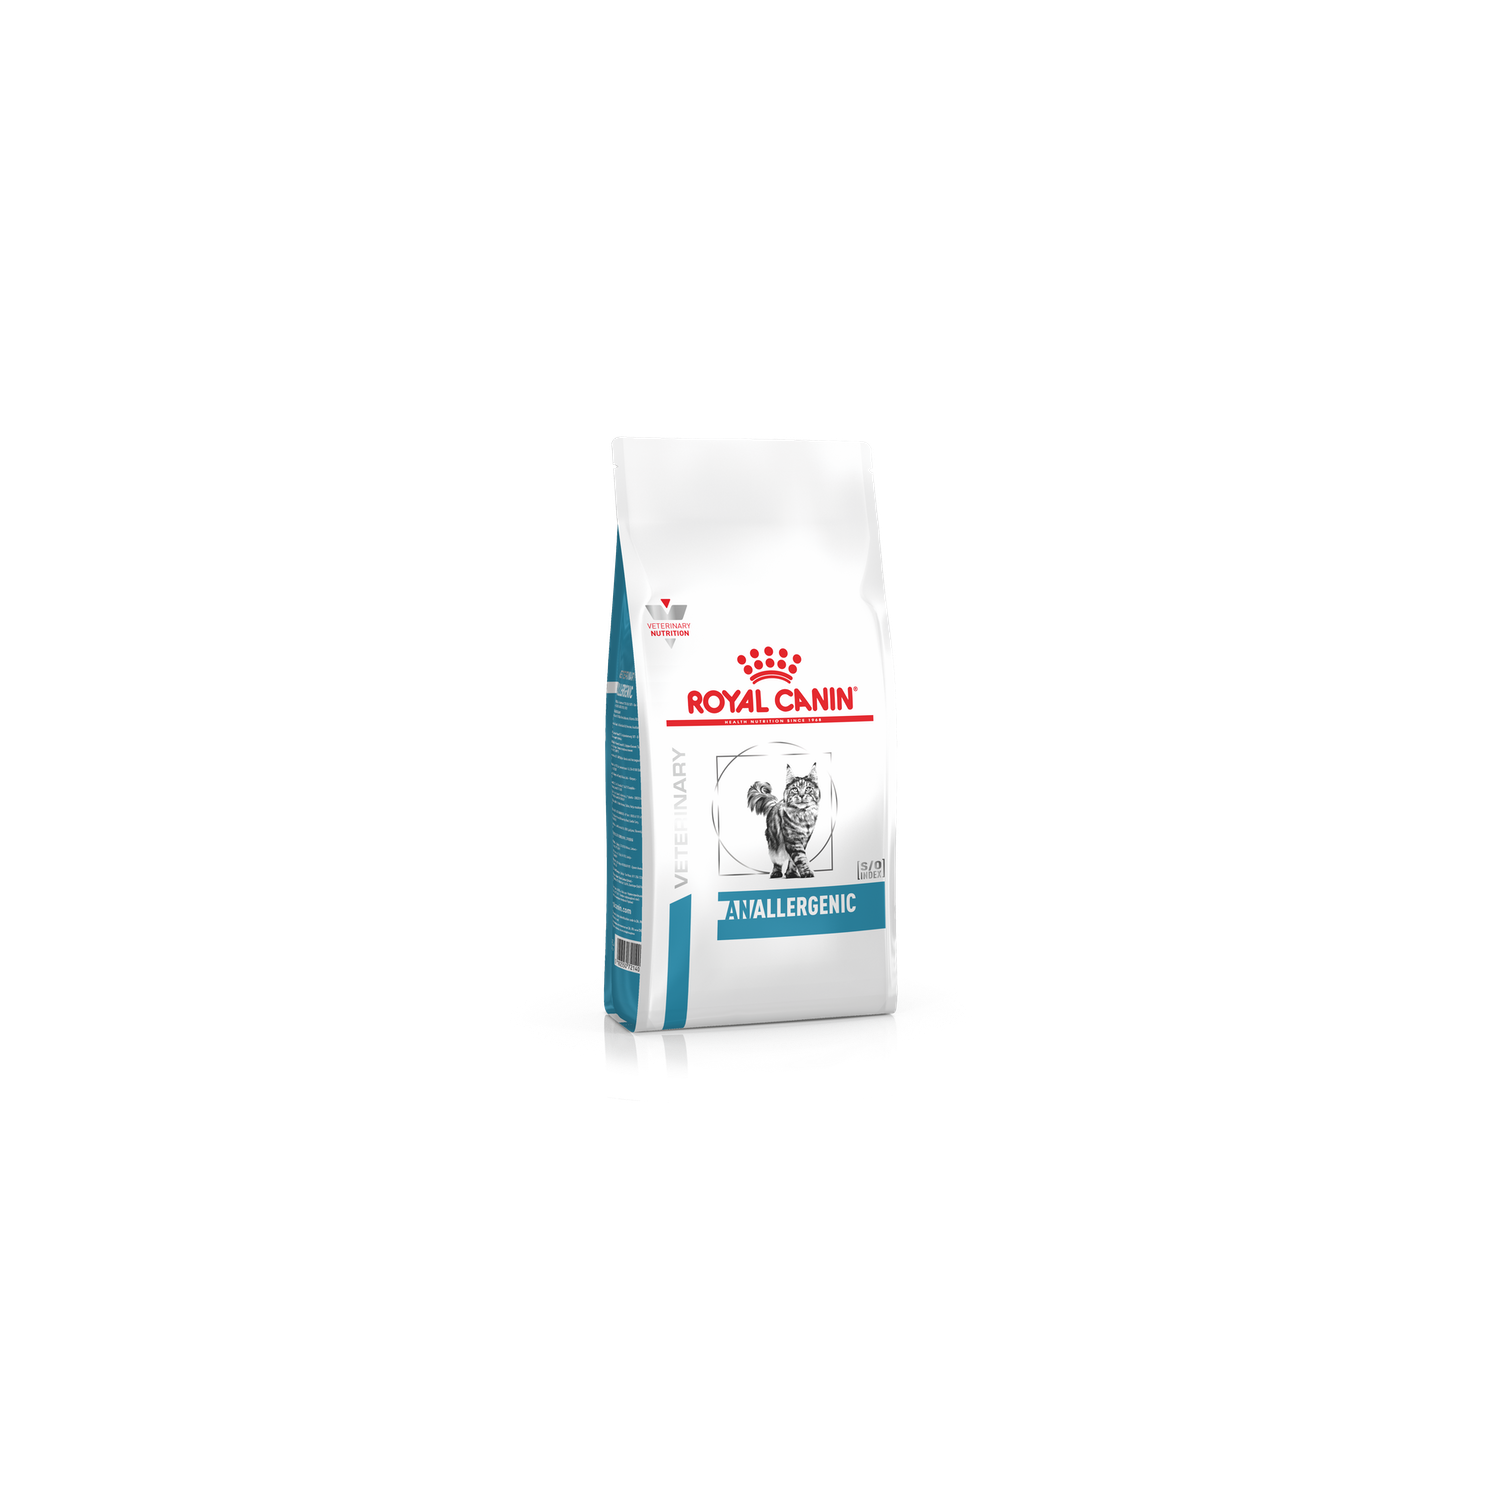 Royal Canin - Royal Canin Cat Anallergenic